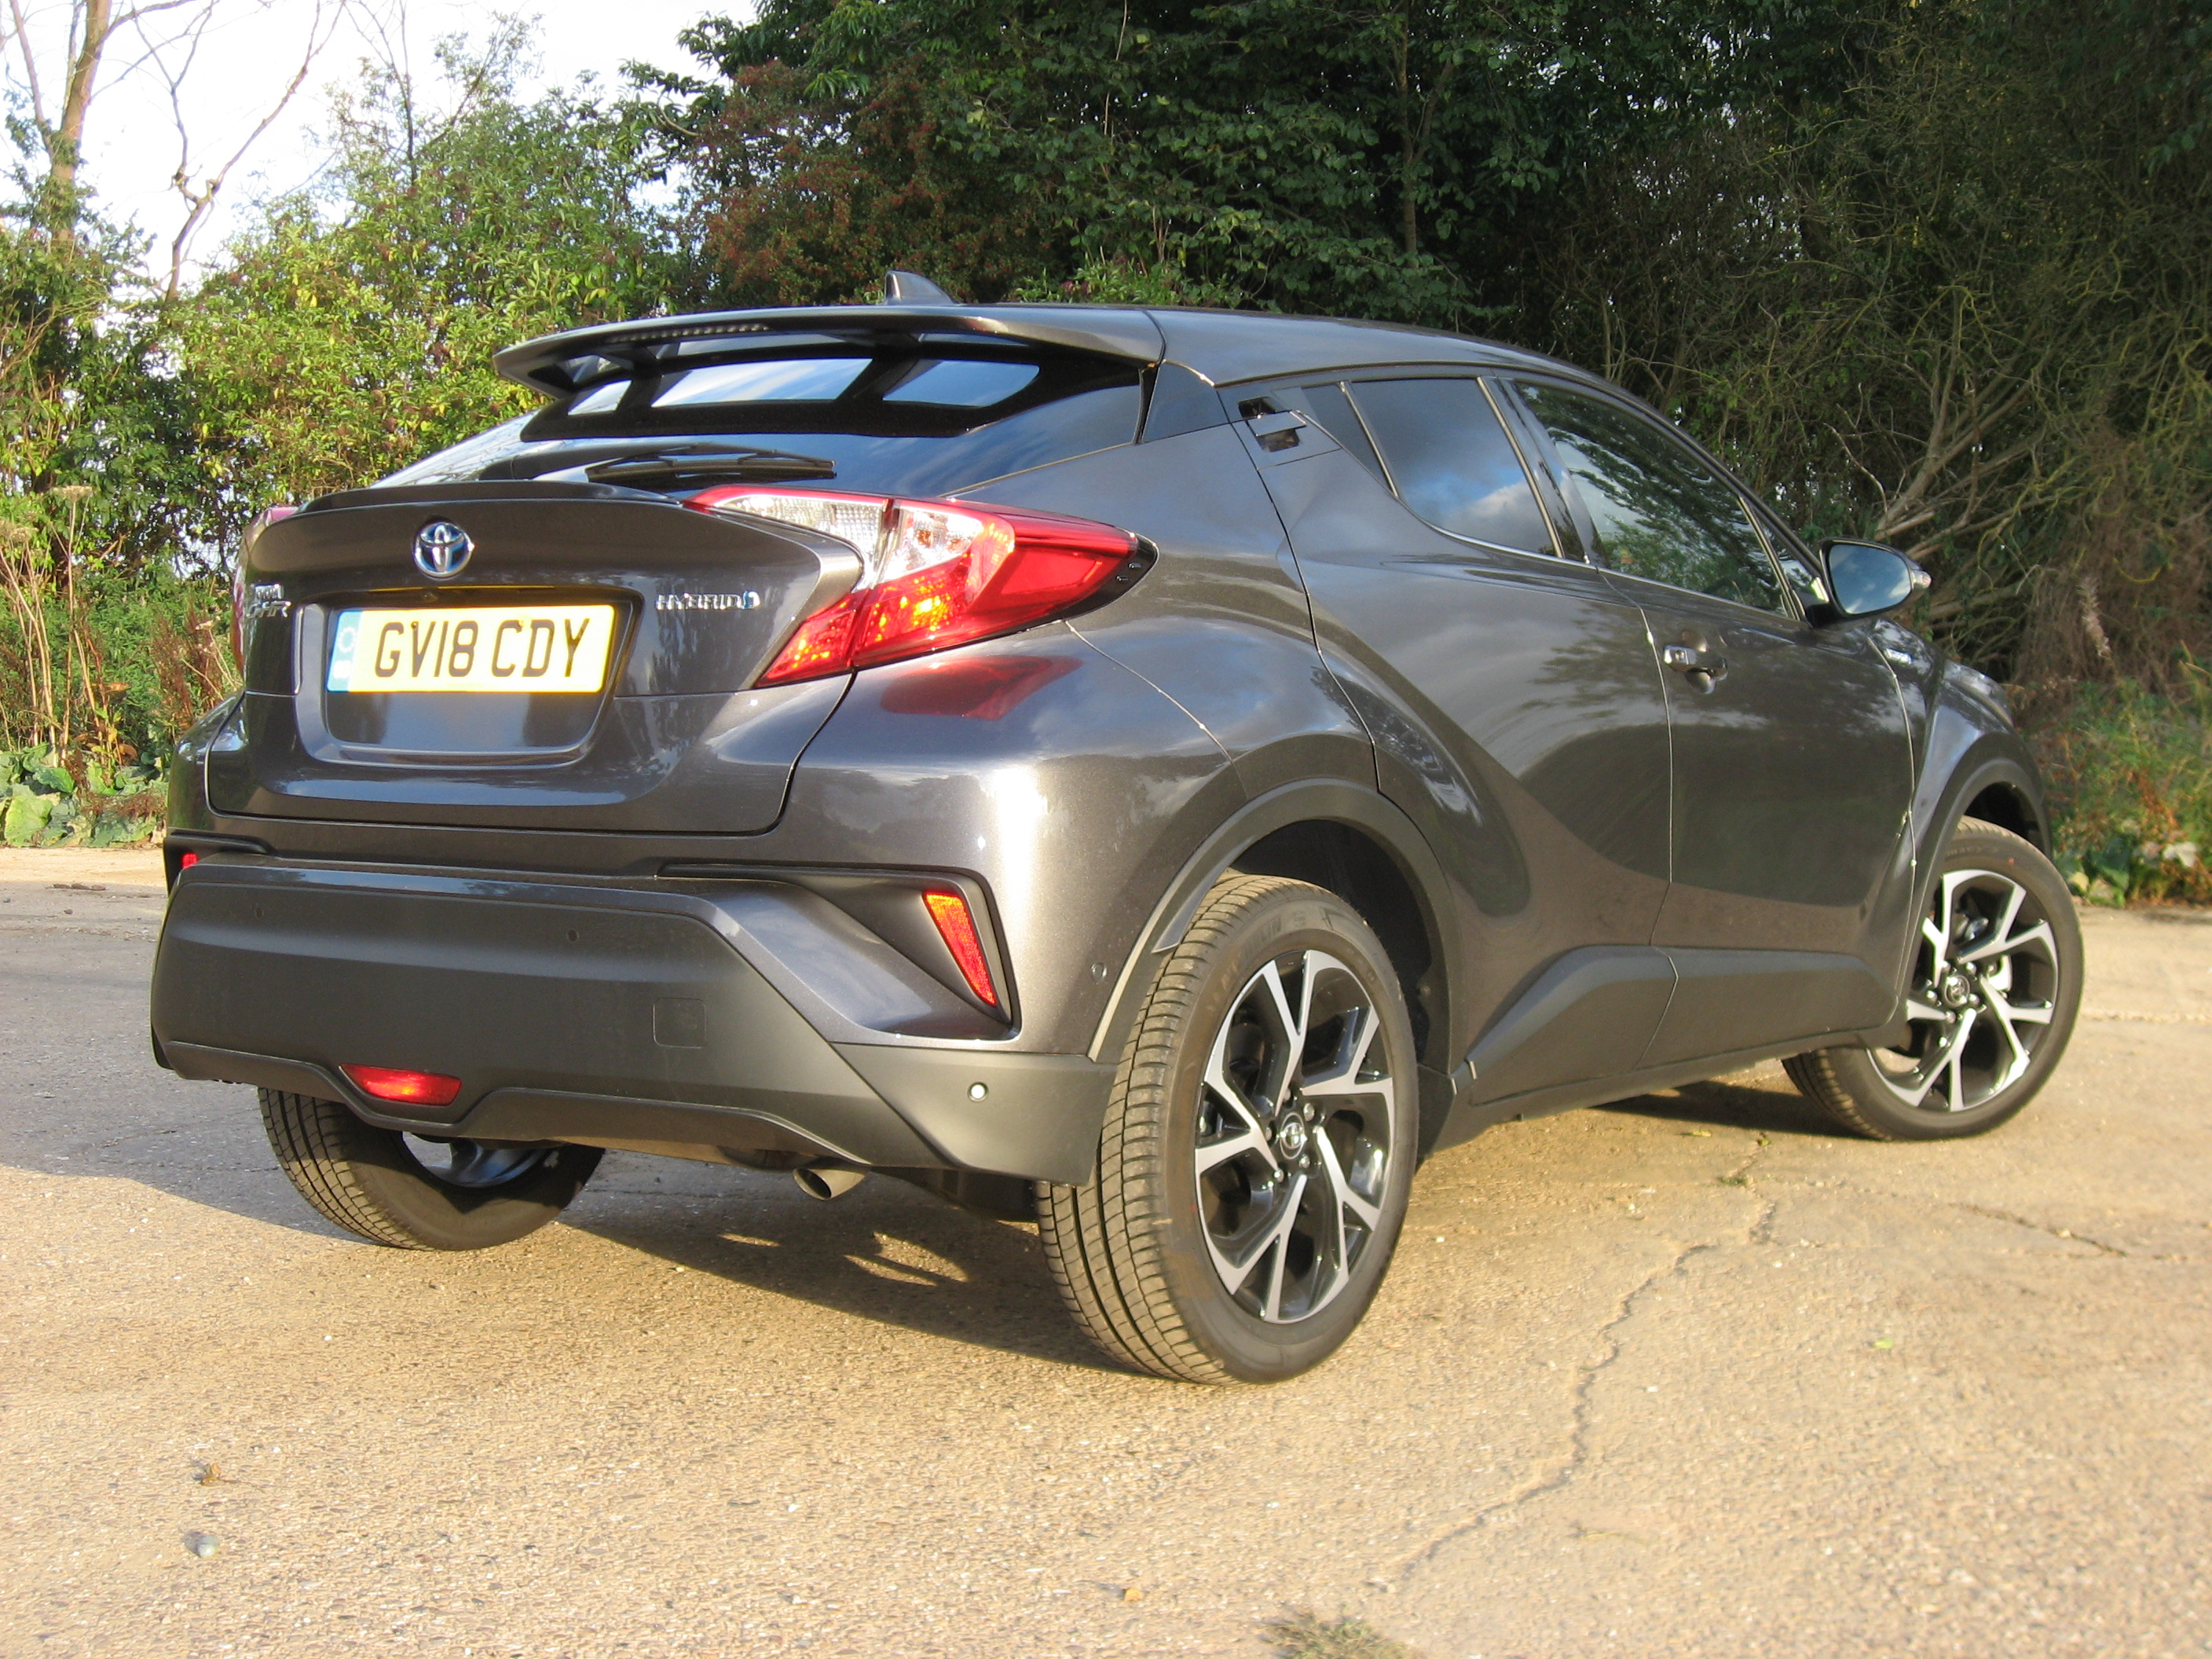 Toyota C-HR Hybrid road test report and review